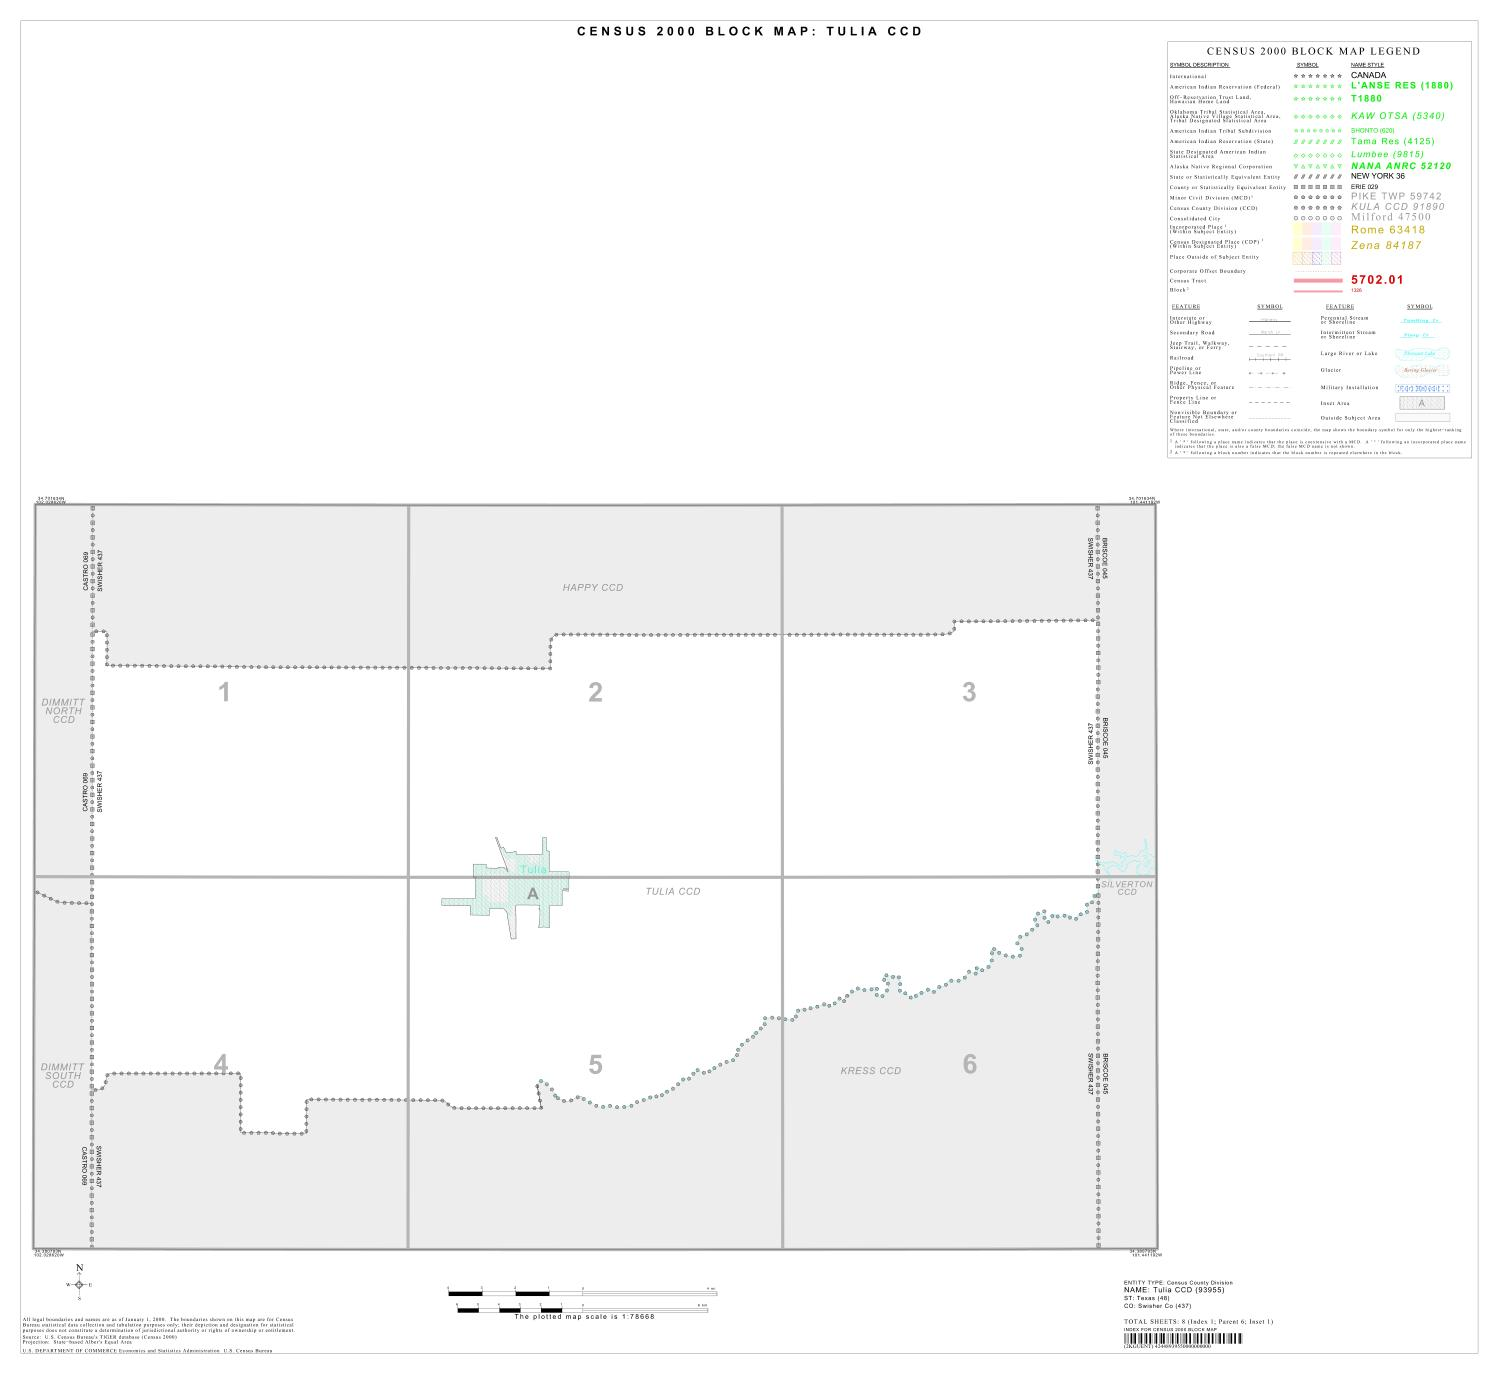 2000 Census County Subdivison Block Map: Tulia CCD, Texas, Index                                                                                                      [Sequence #]: 1 of 1